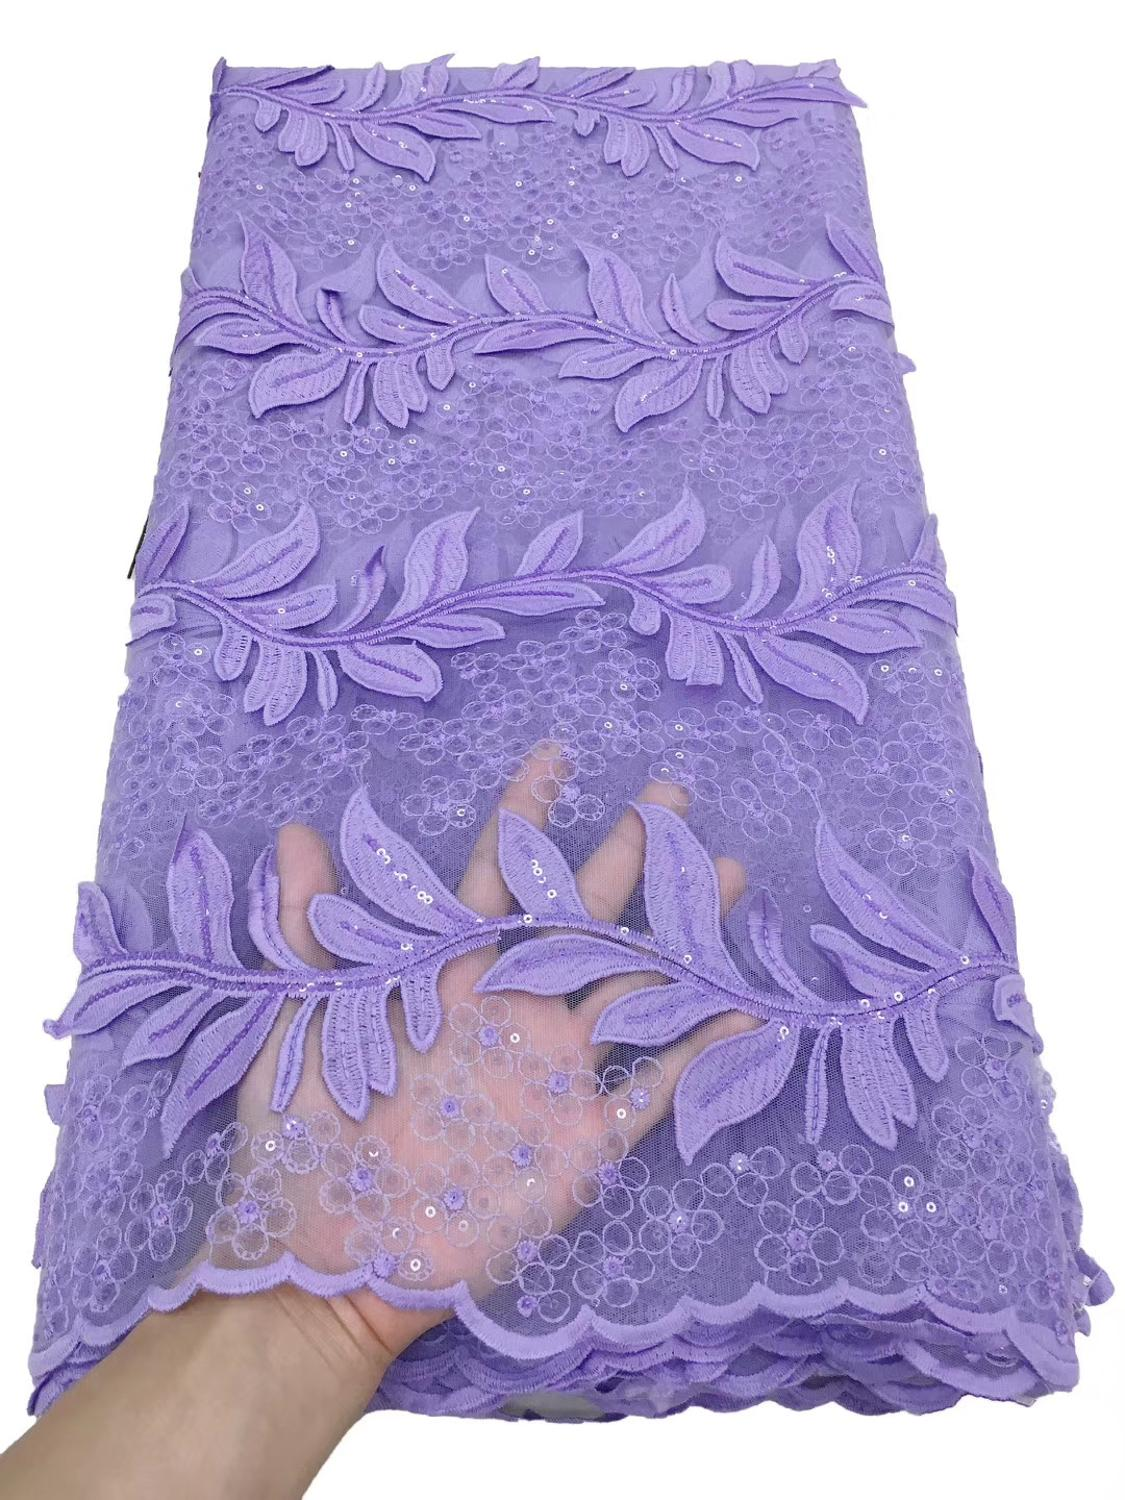 Purple Sequins French Tulle Lace Fabric High Quality African Lace Fabric 2020 Latest Milk Silk Lace For Evening Party Sew TS9127